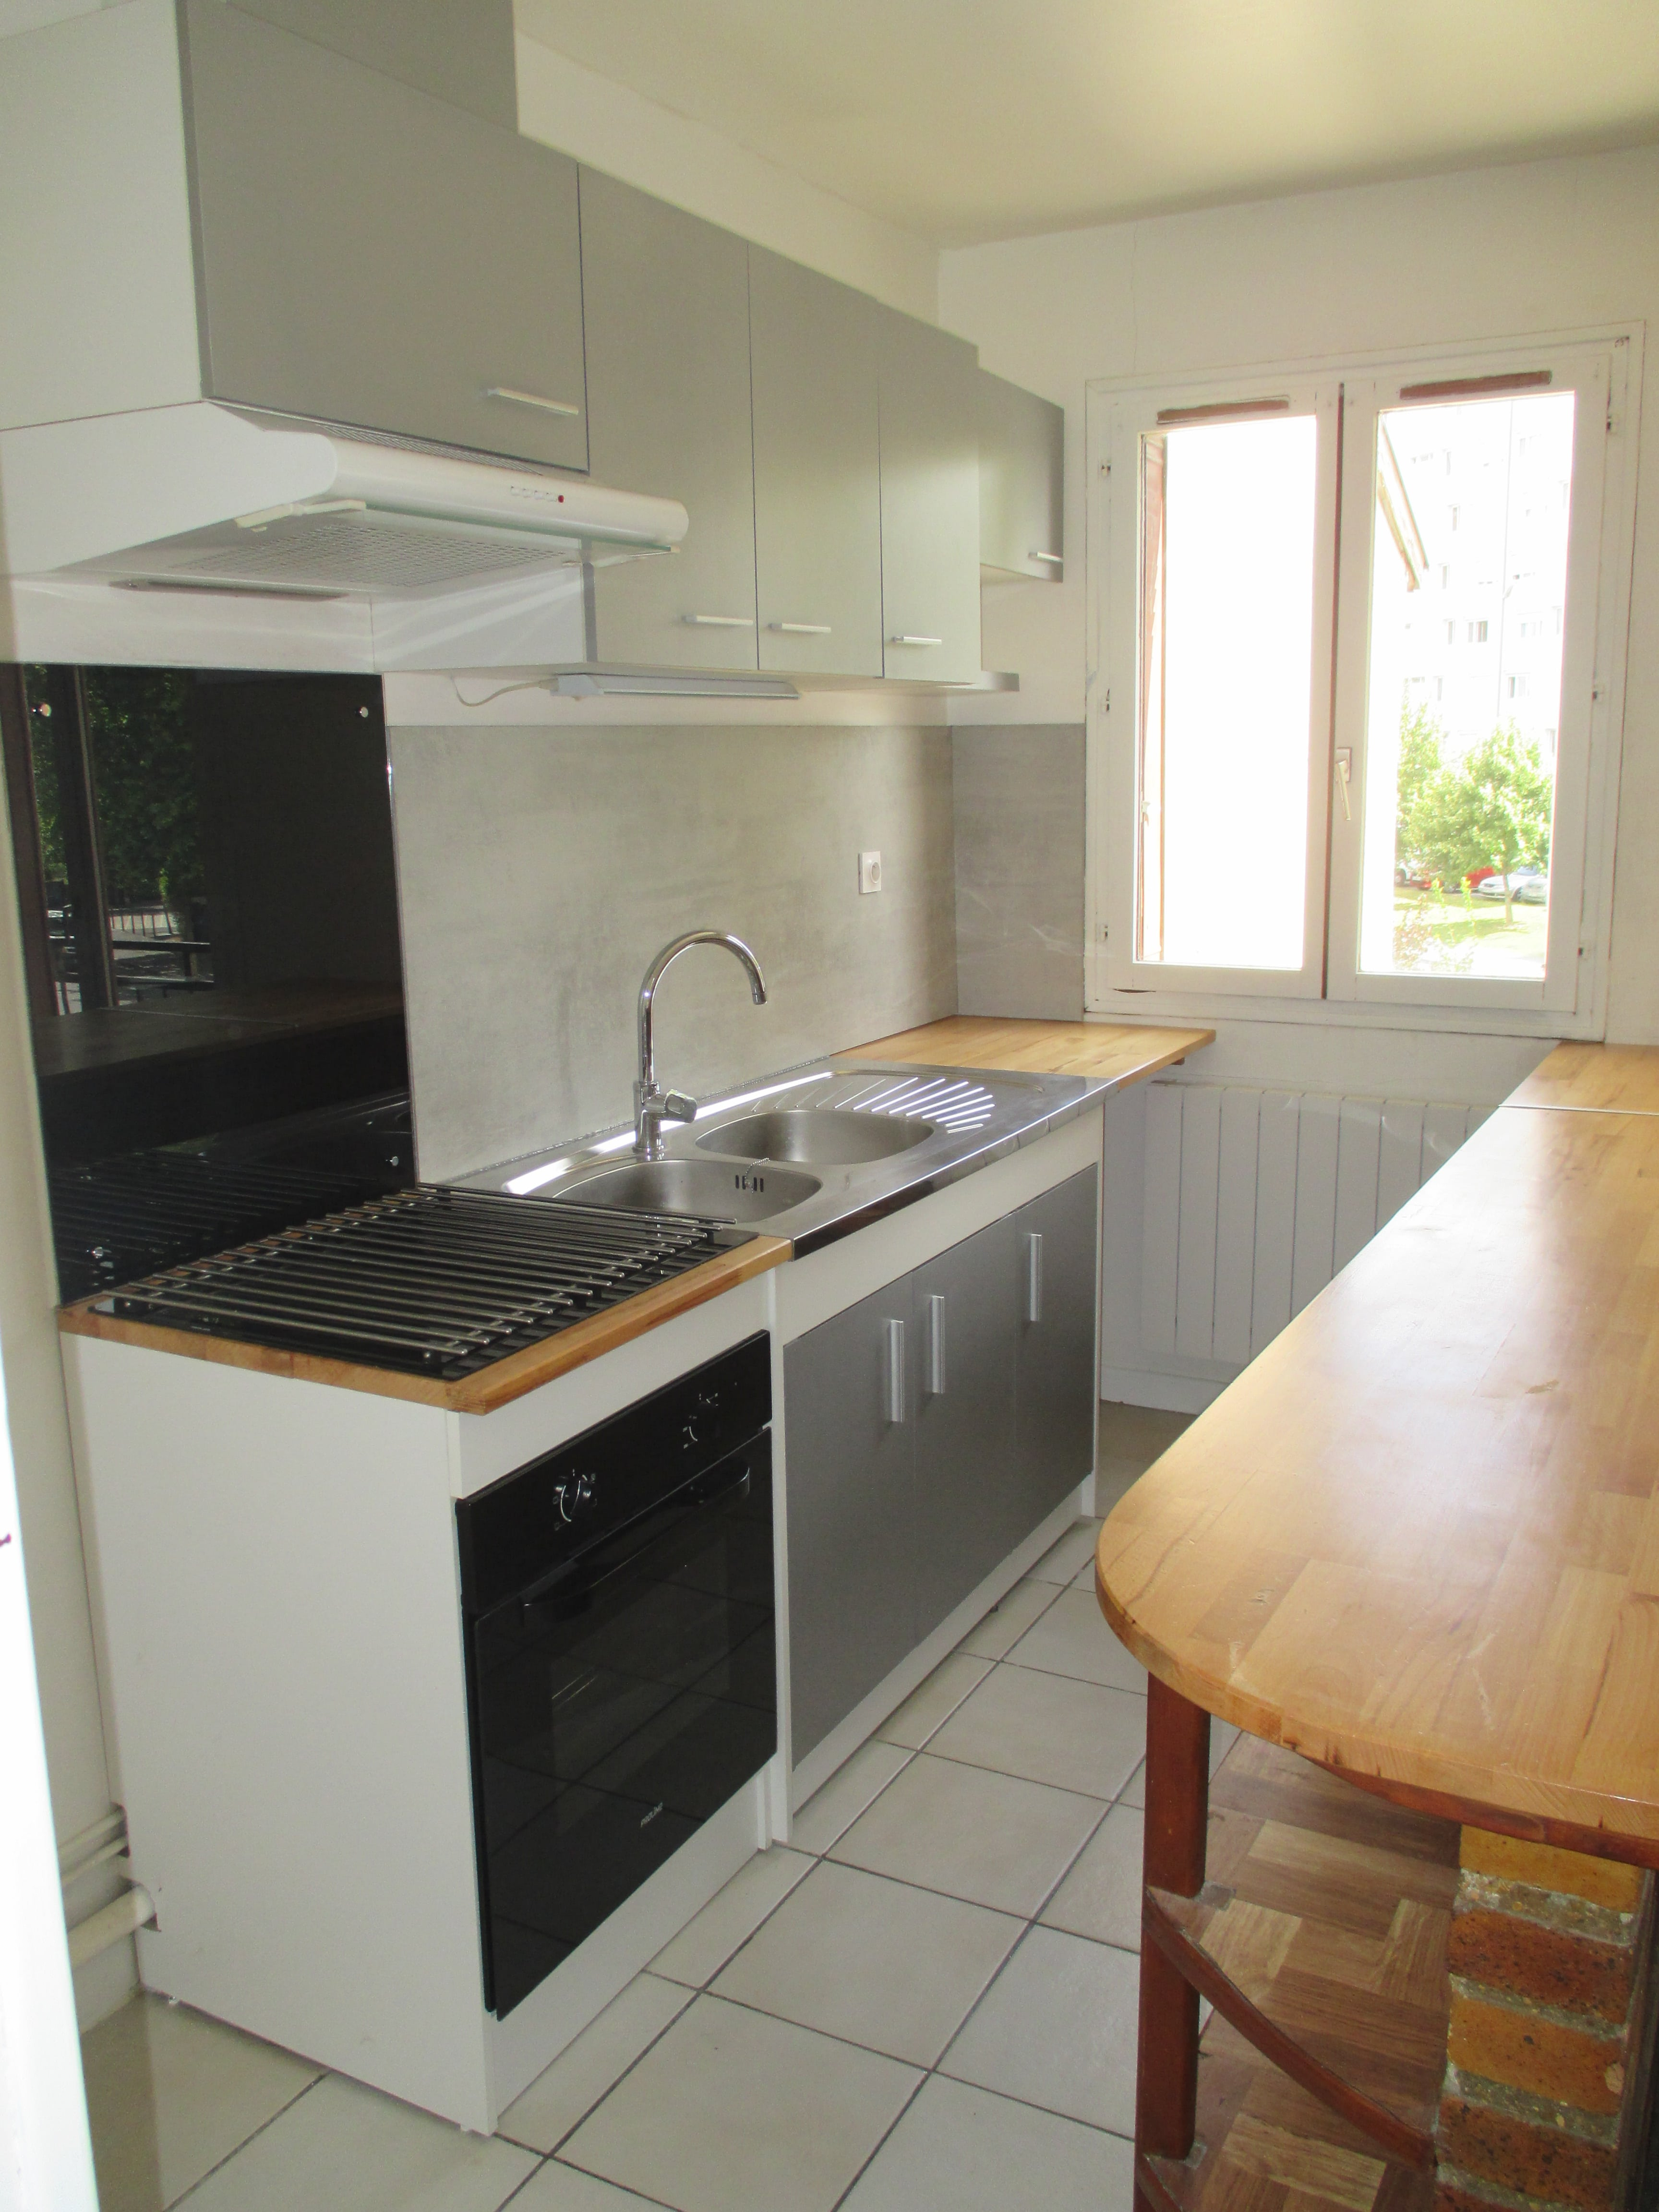 Damonte LOCATION APPARTEMENT T3 CHALONS EN CHAMPAGNE G638